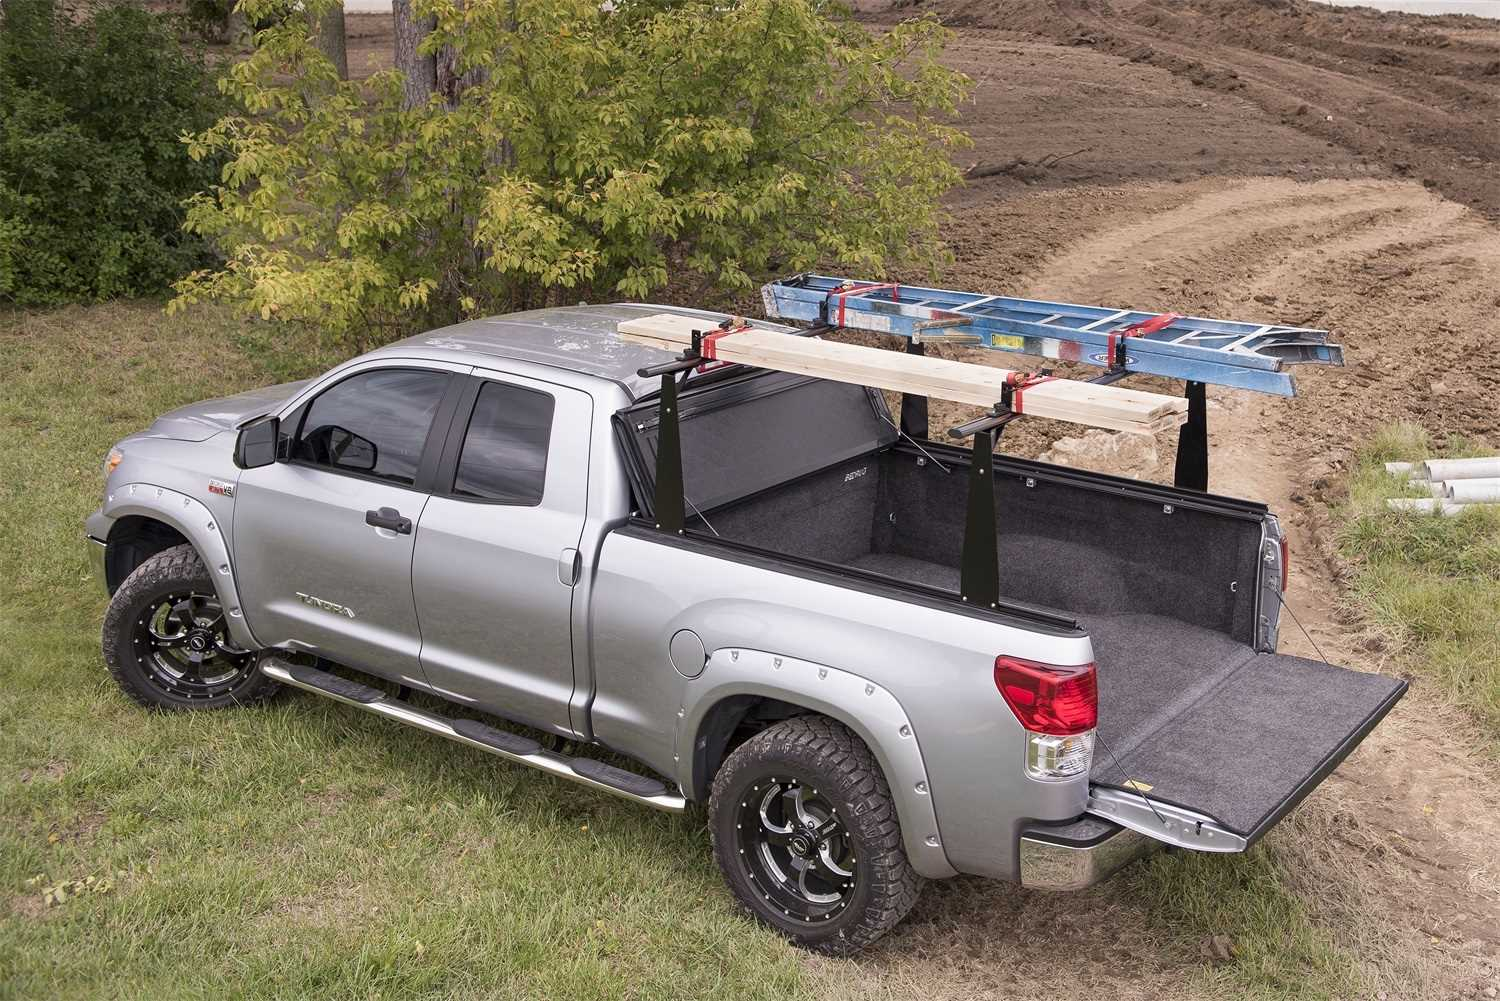 72407BT Bak Industries BAKFlip CS-F1 Hard Folding Truck Bed Cover/Integrated Rack System